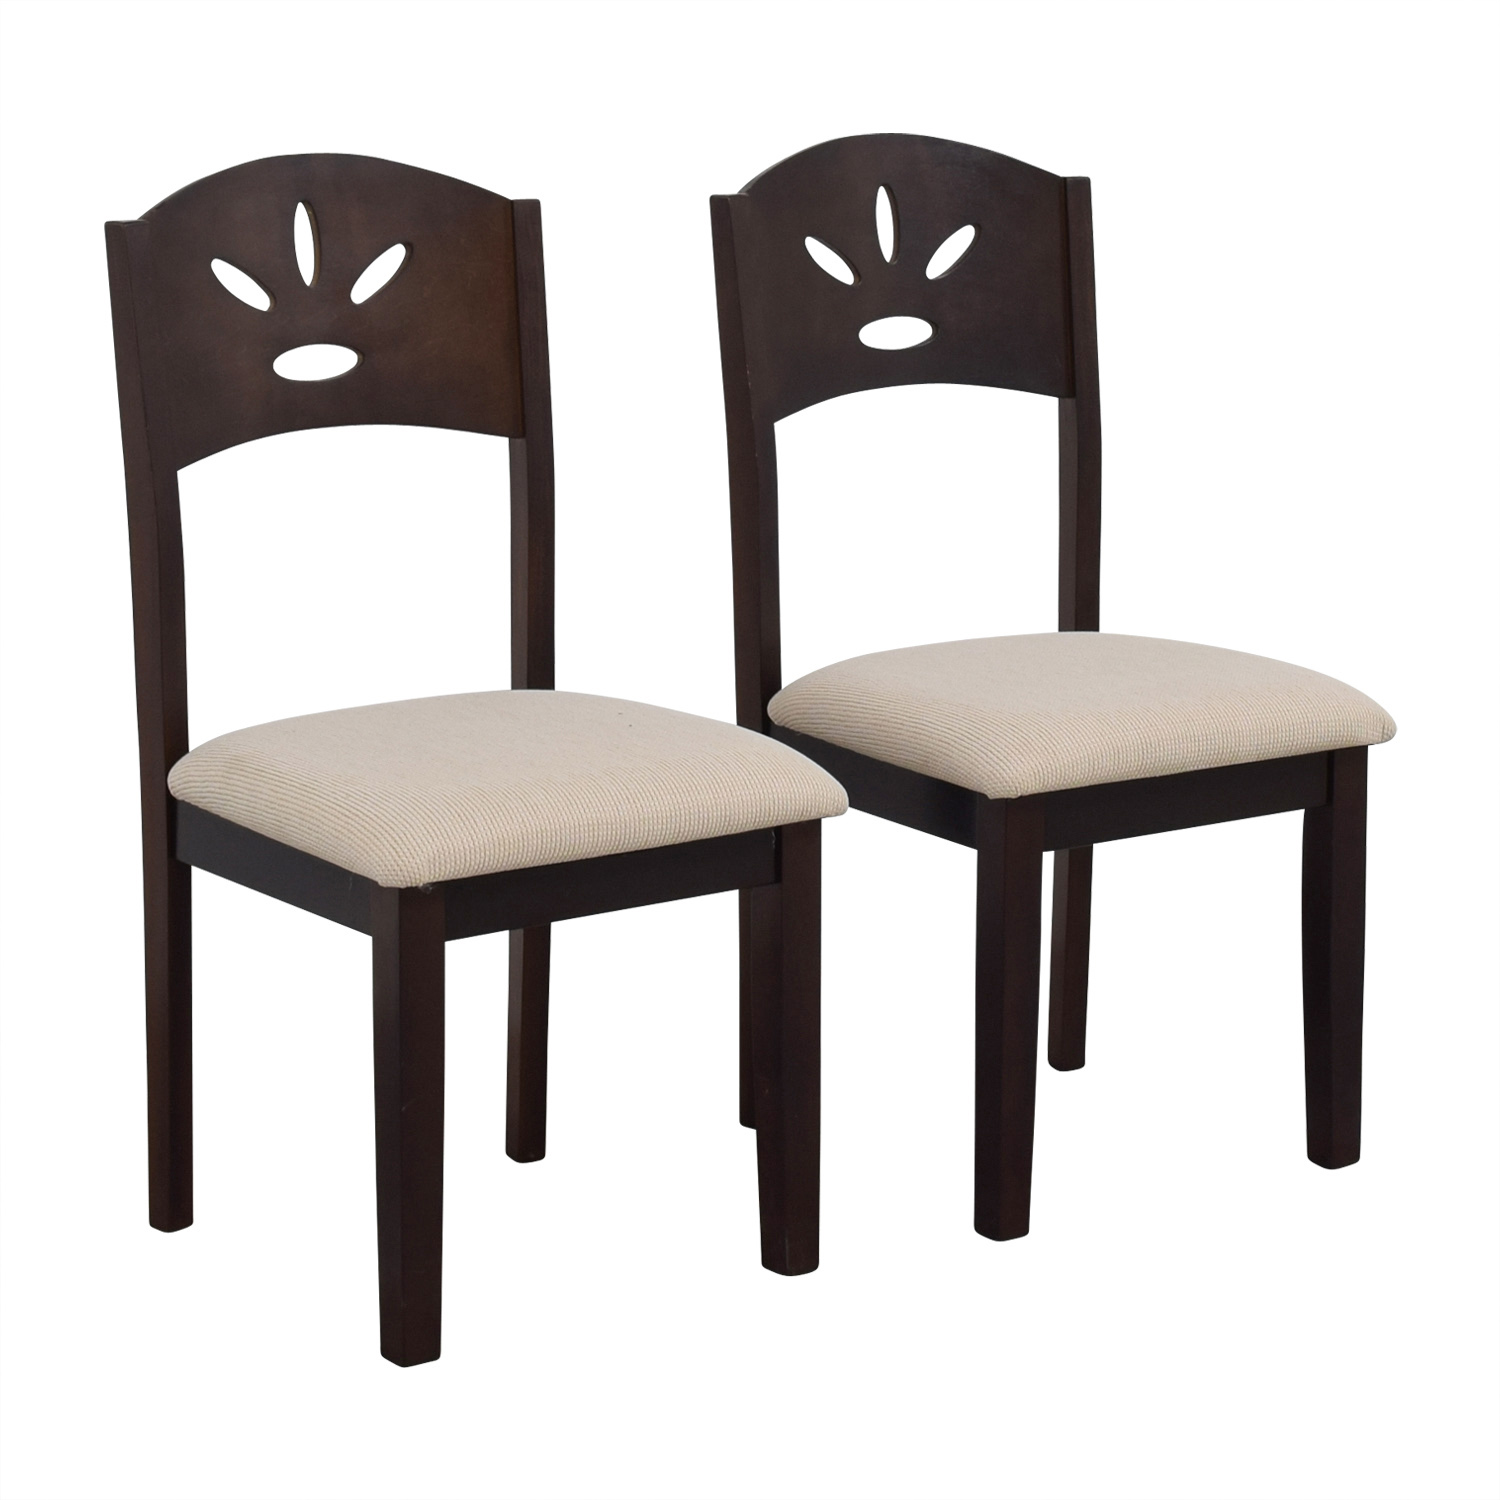 Off White and Wood Dining Chairs nj